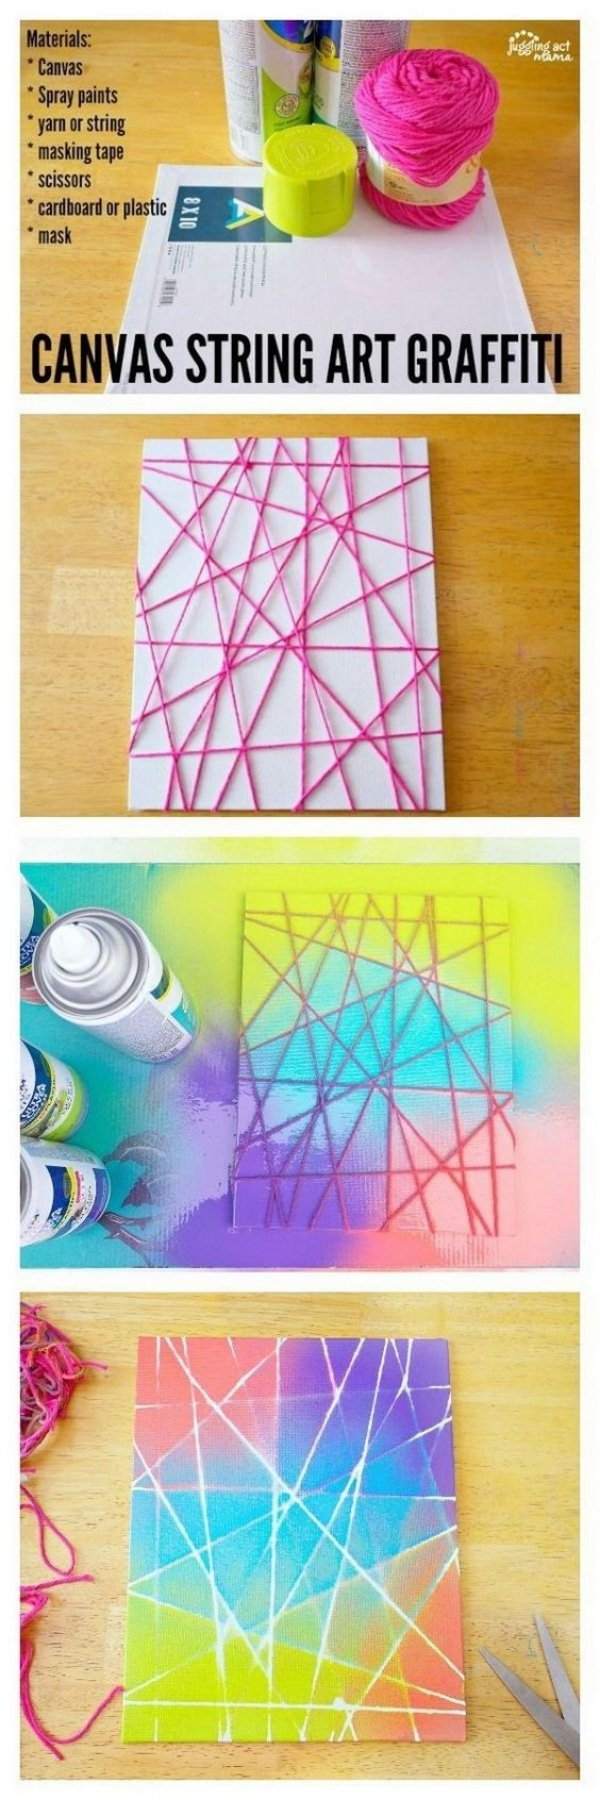 25 Diy Canvas Paintings Tutorials Explained For Beginners Artisticaly Inspect The Artist Inside You